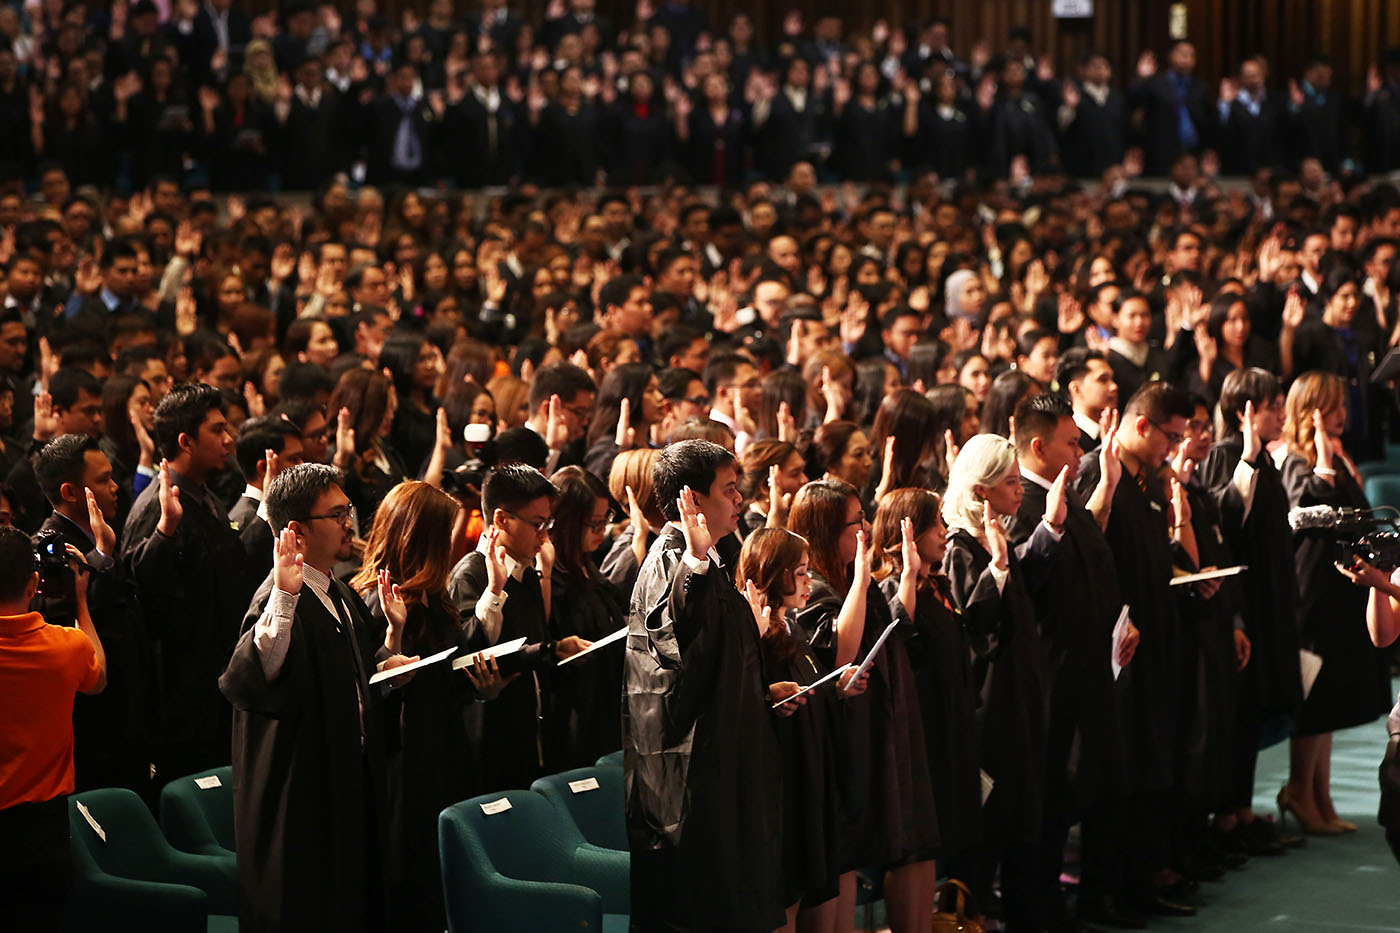 OATH-TAKING. About 1,724 new lawyers take their oath before the Supreme Court justices on June 1, 2018. Photo by Ben Nabong/Rappler